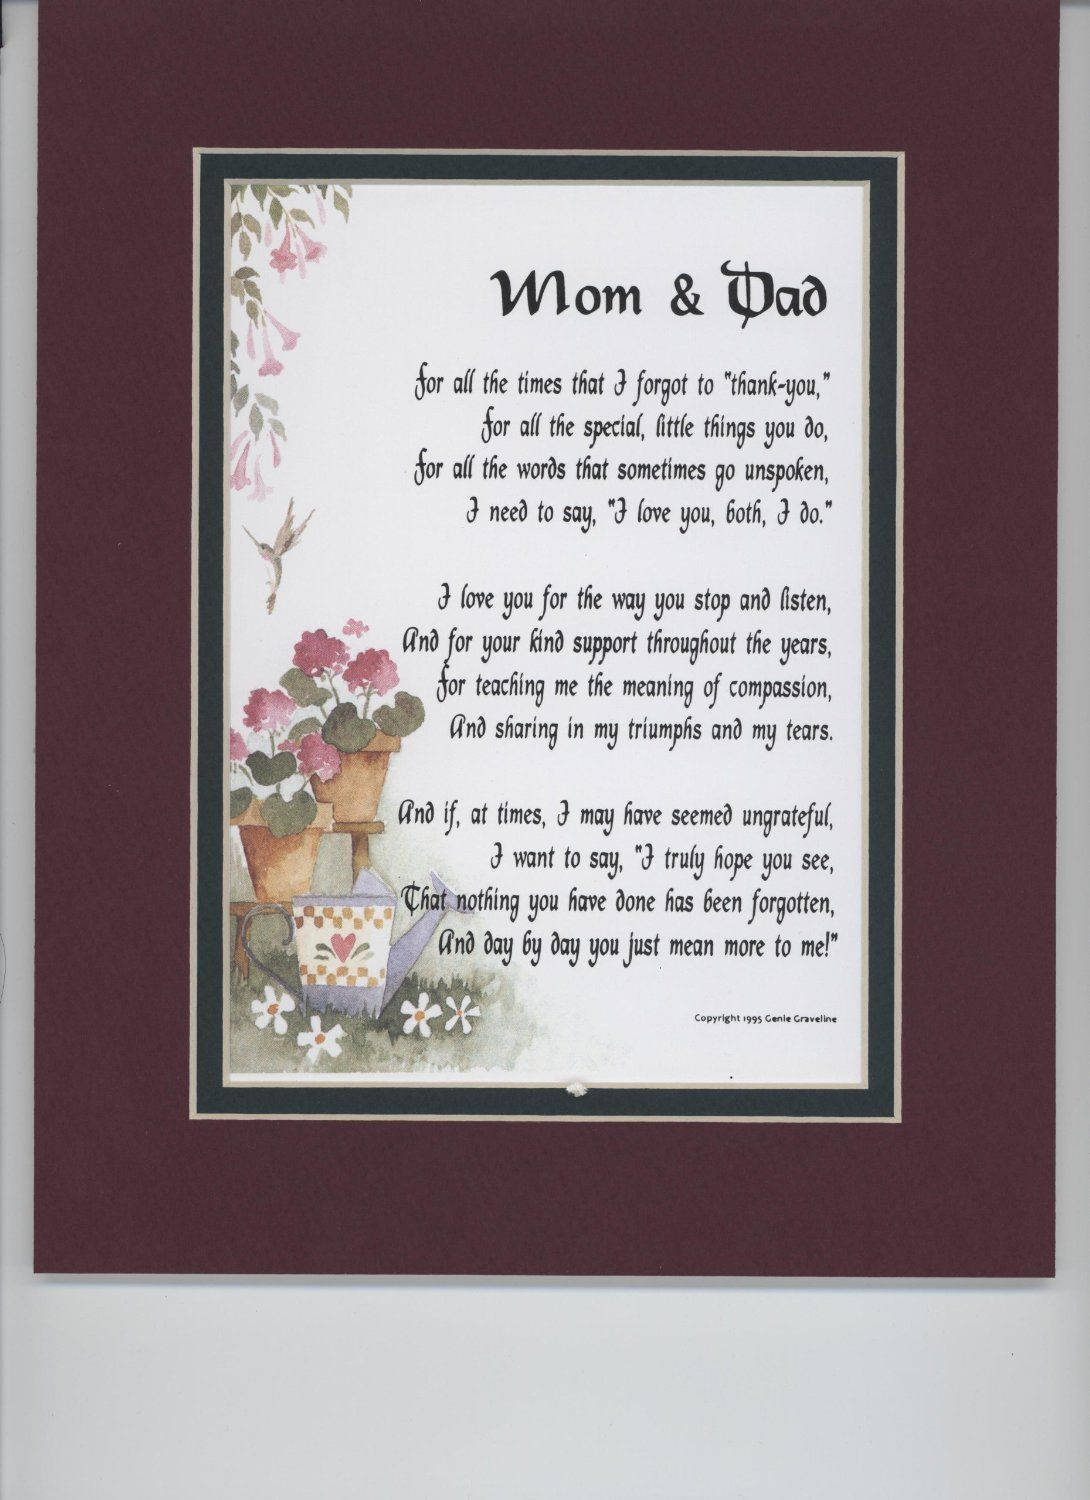 Wedding Anniversary Gift For New Mom : ... anniversary poems Special 30th Wedding Anniversary Gifts for Mom and